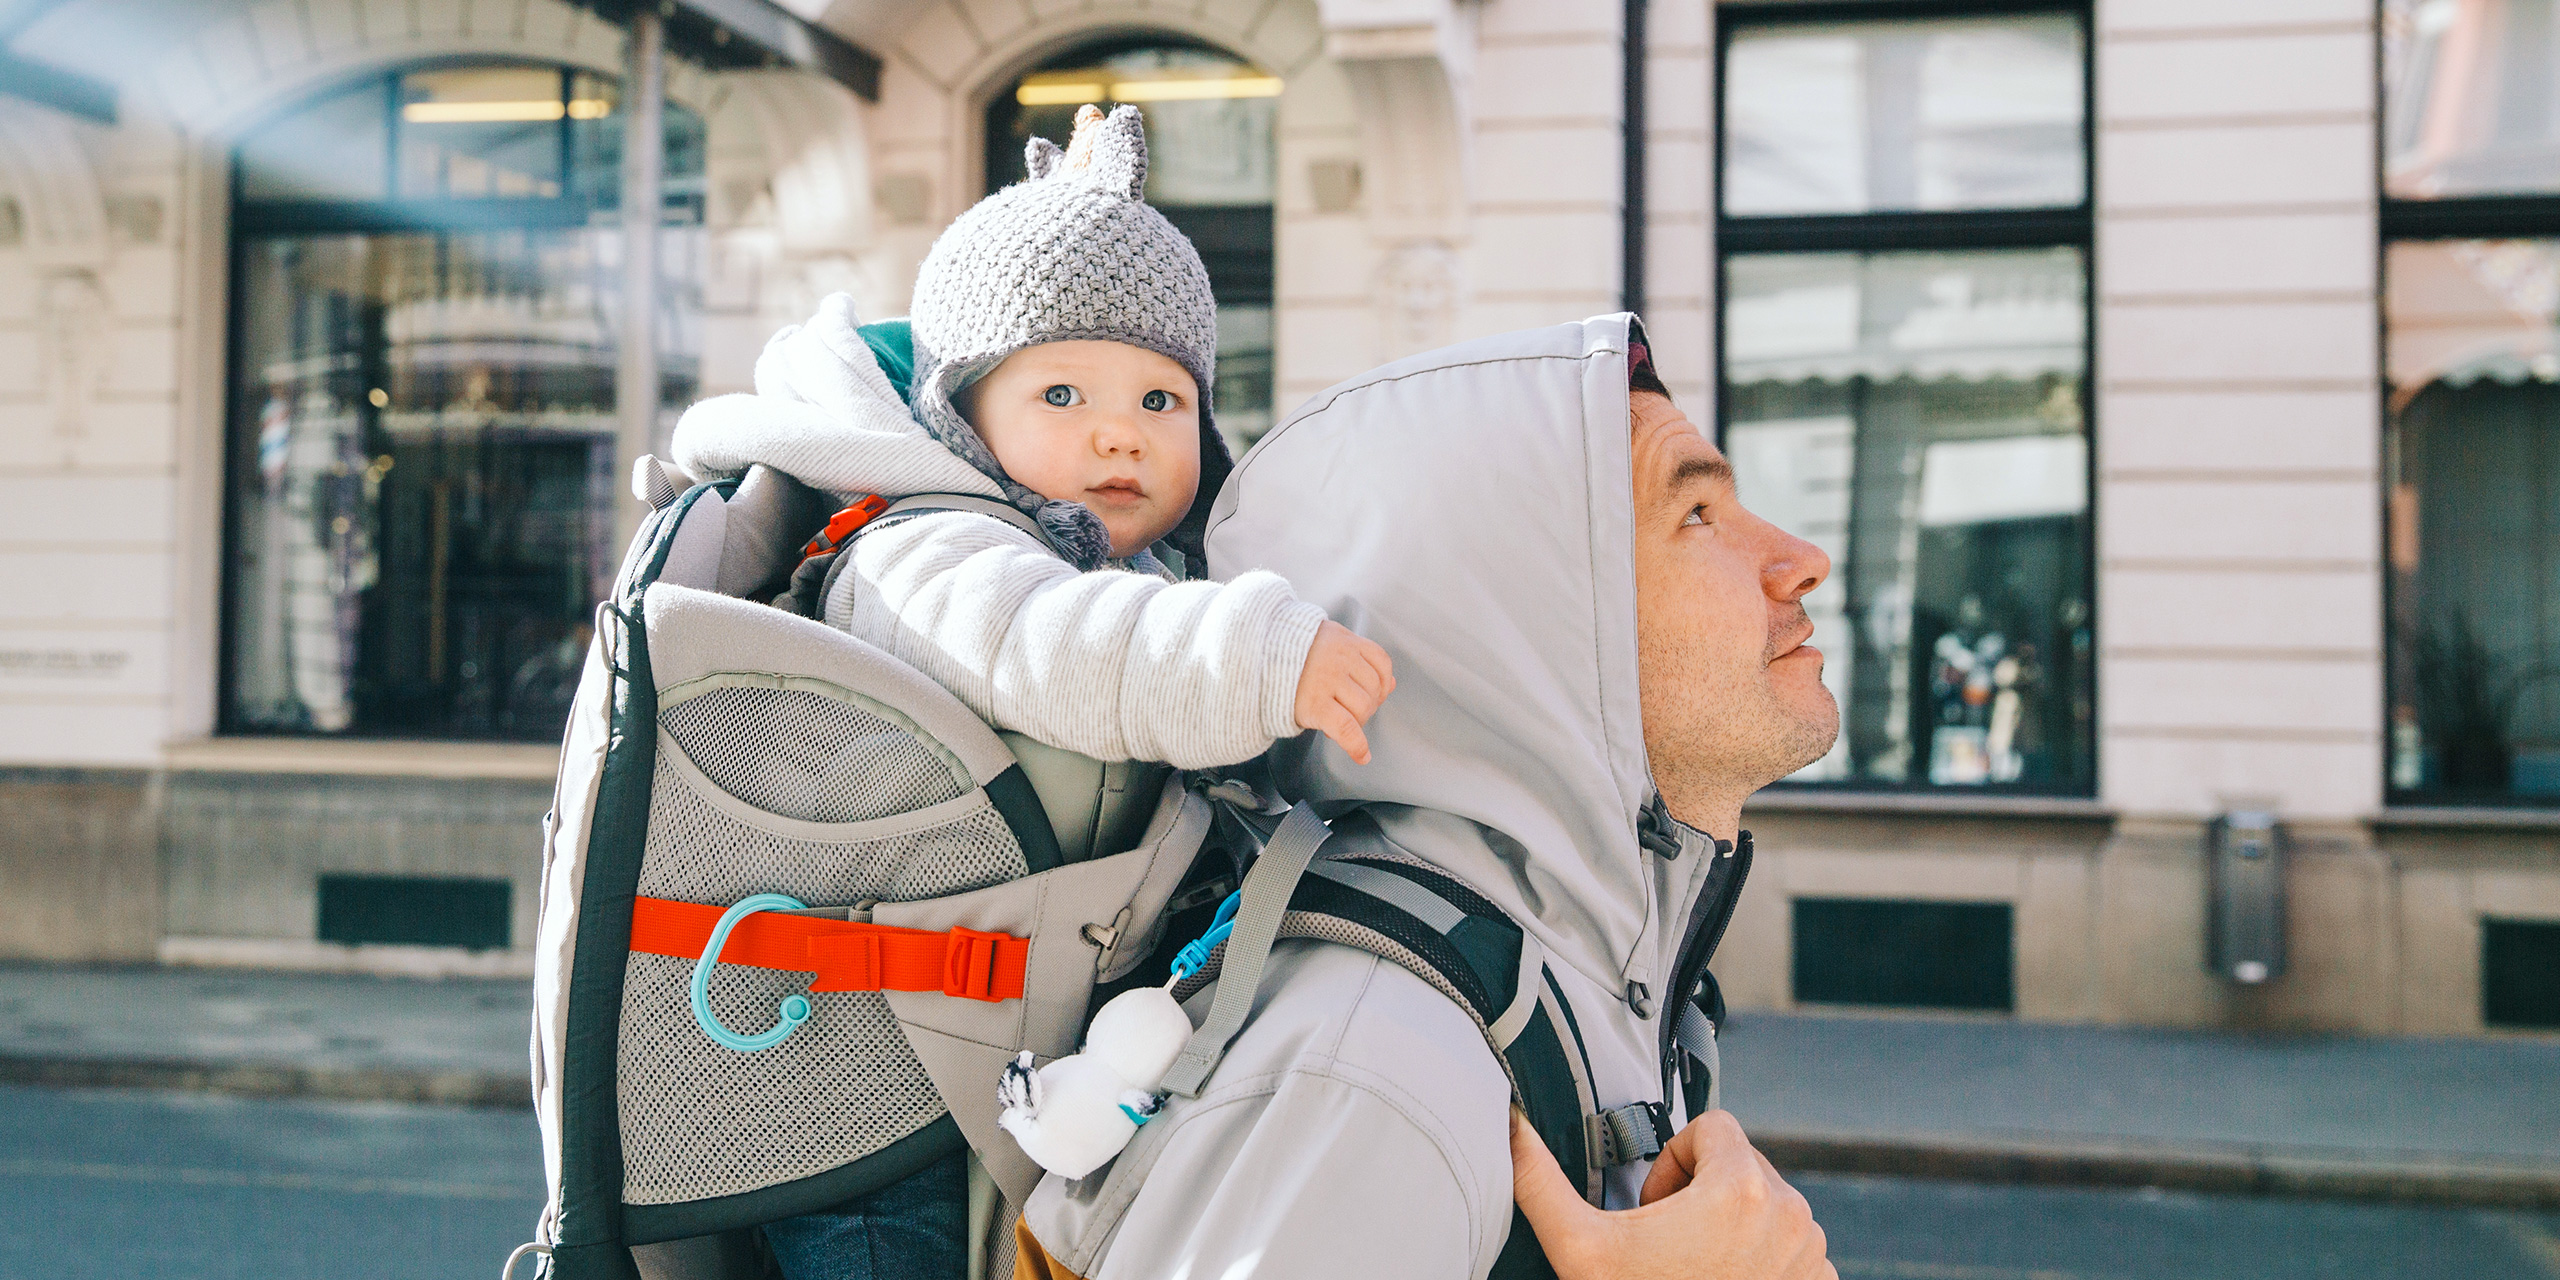 dad walking with a baby in a carrier backpack; Courtesy Natalia Deriabina/Shutterstock